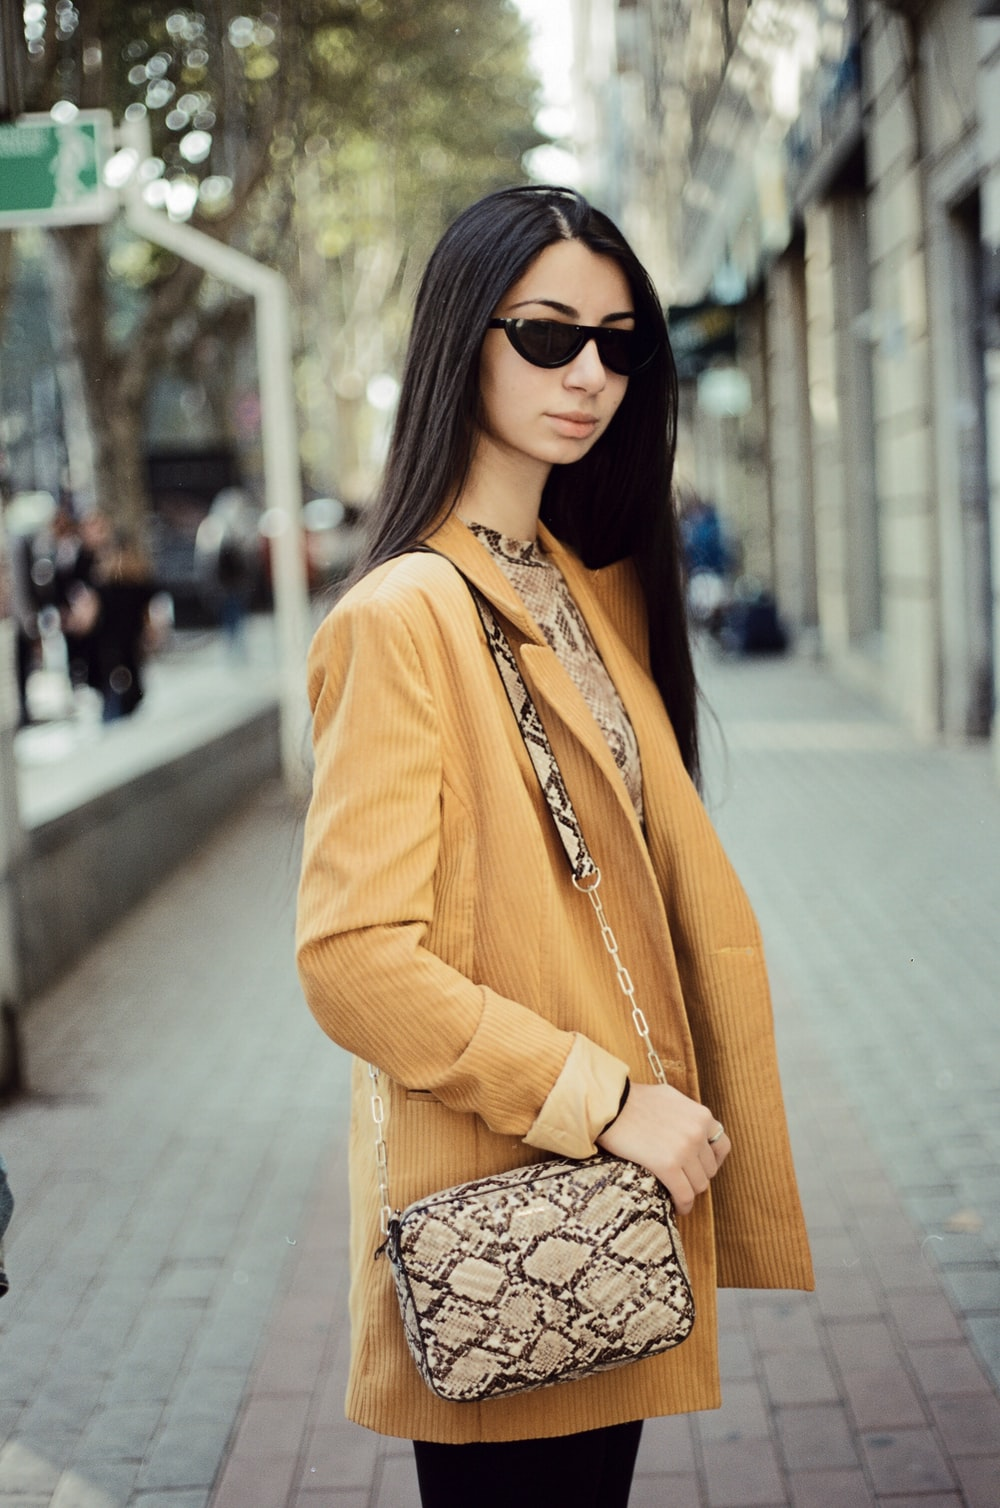 woman in orange blazer and black and white floral skirt wearing black sunglasses